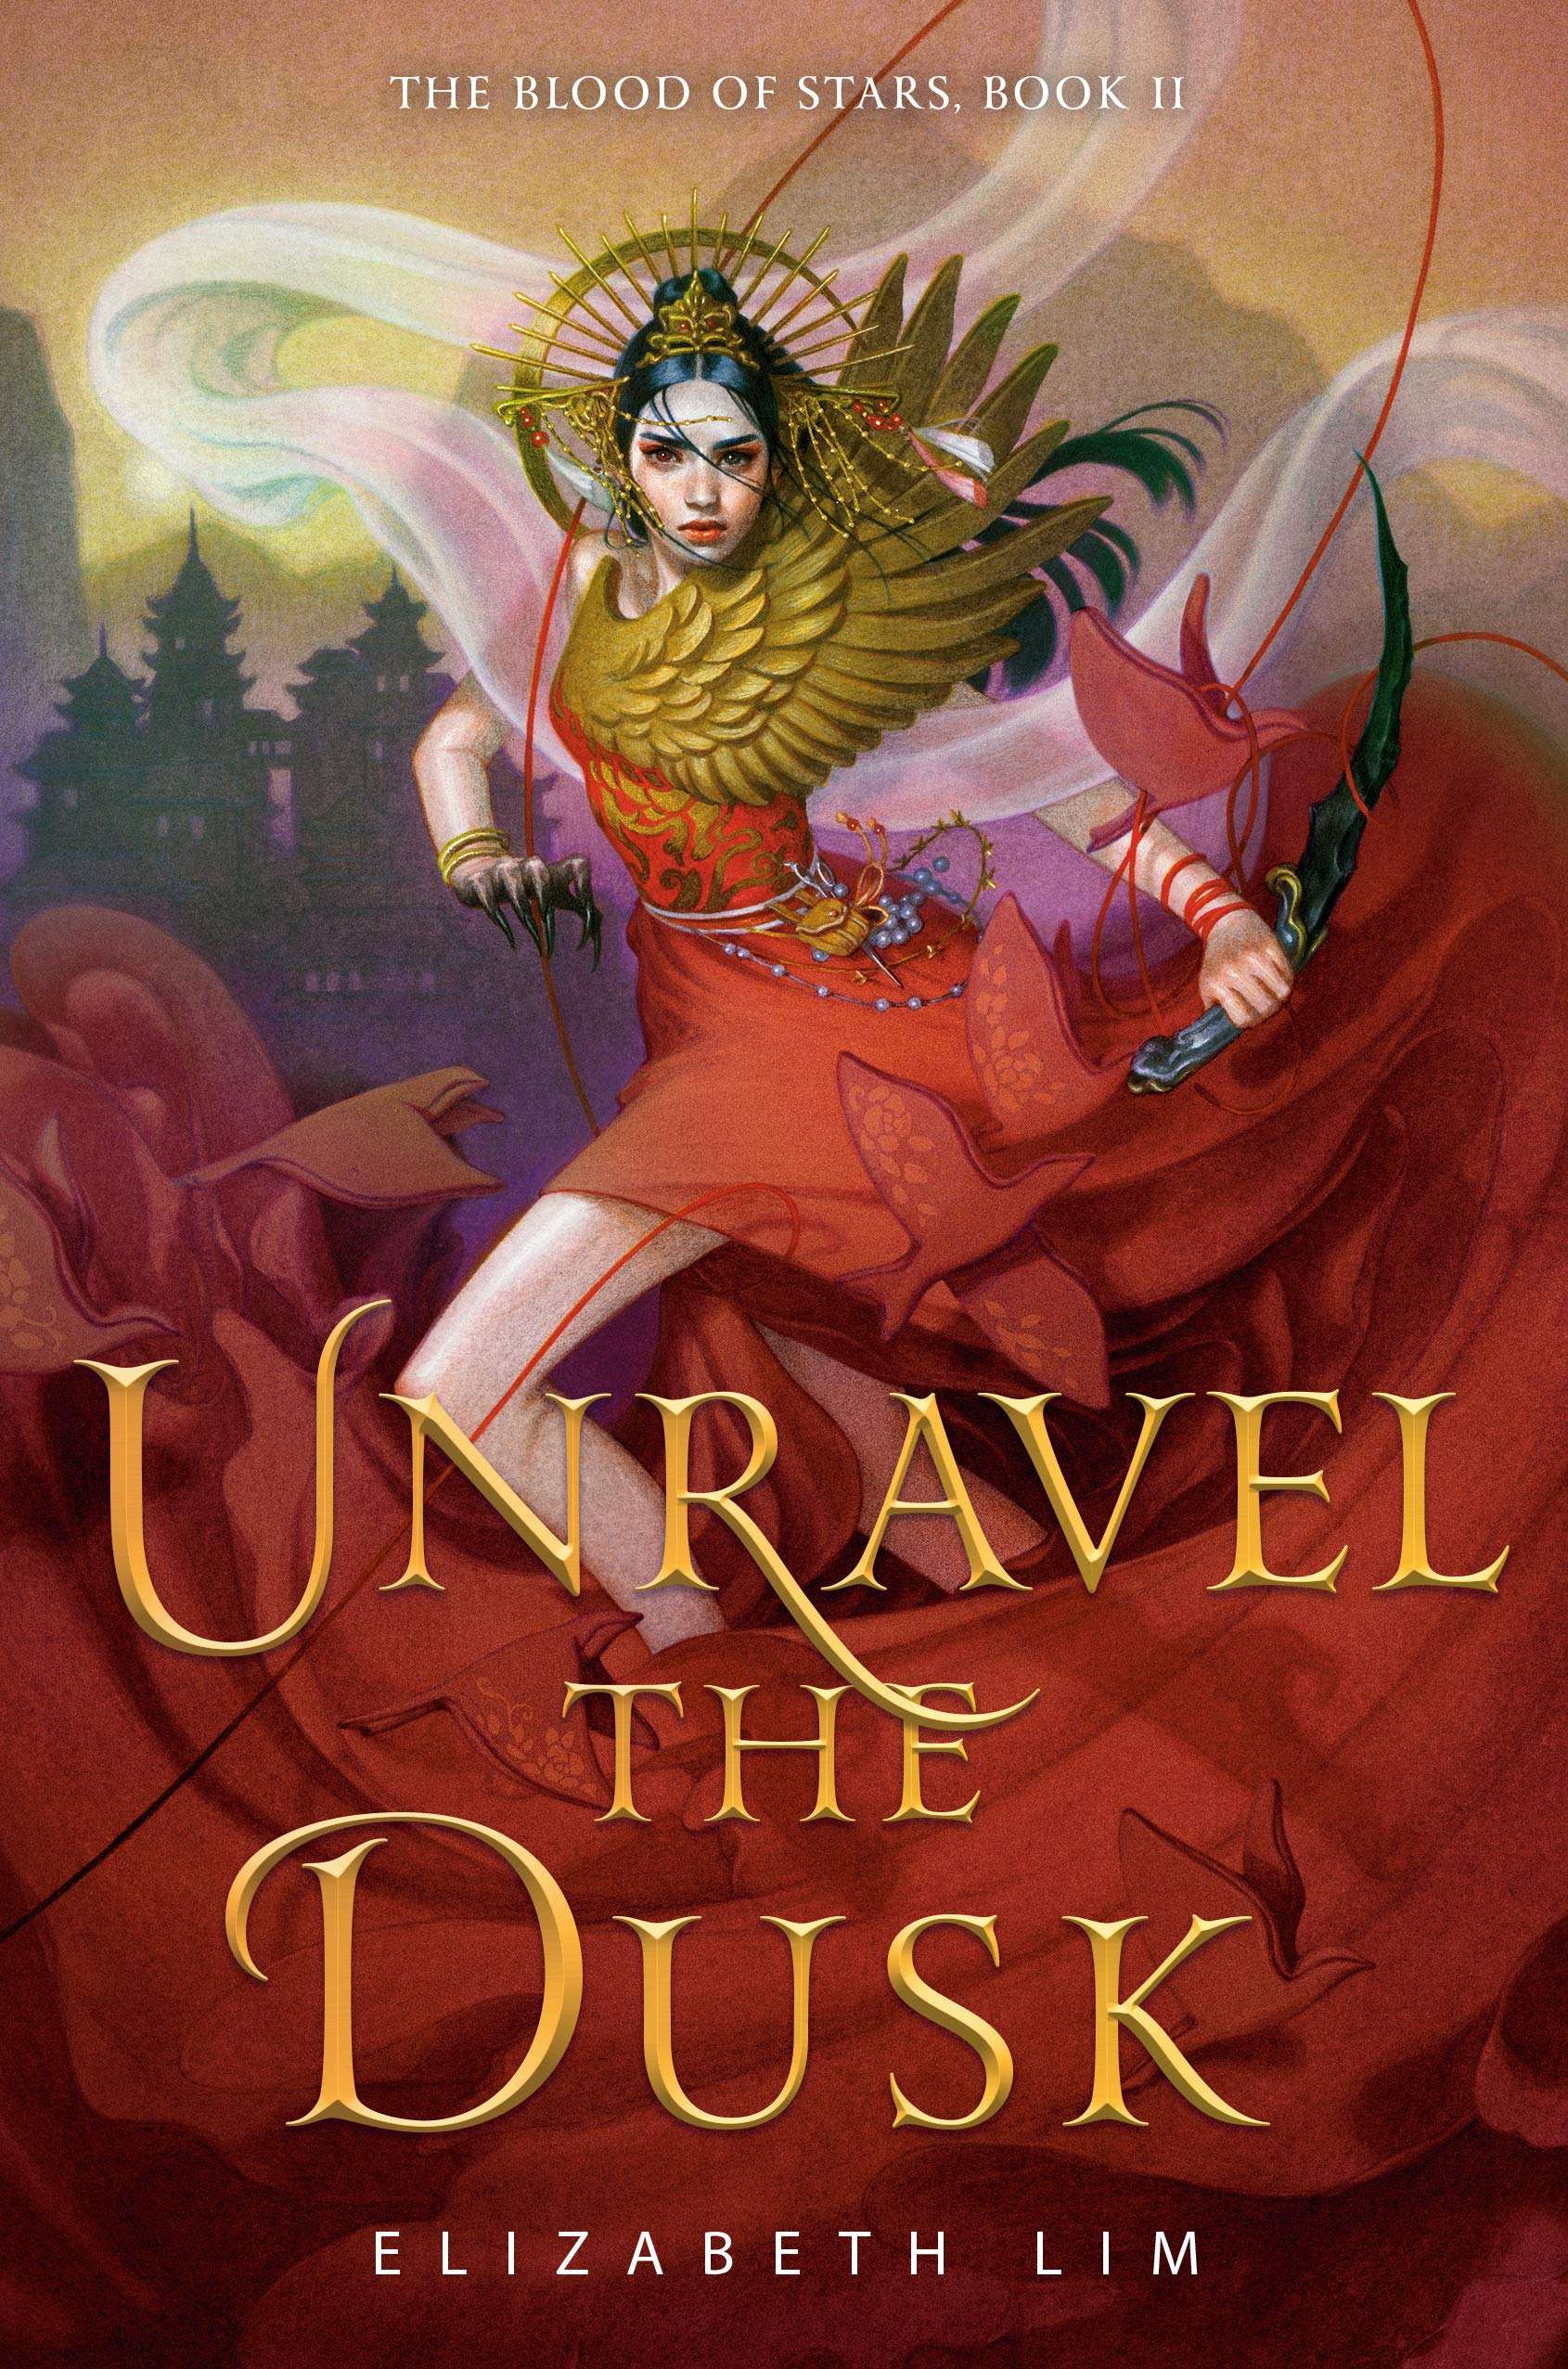 Amazon.com: Unravel the Dusk (The Blood of Stars) (9780525647027 ...